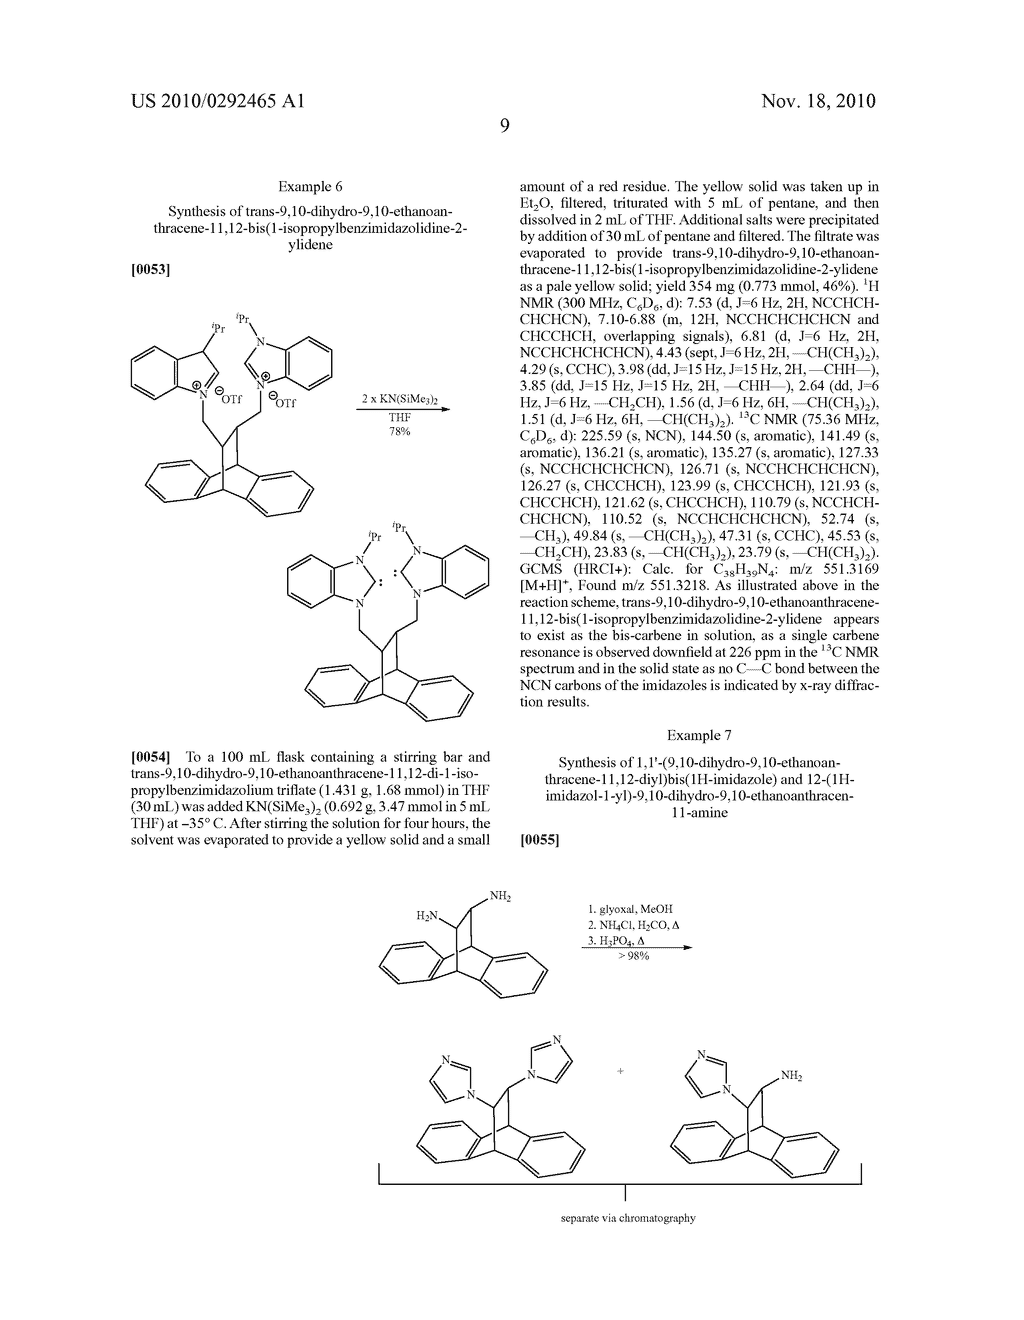 CATALYSTS CONTAINING N-HETEROCYCLIC CARBENES FOR ENANTIOSELECTIVE SYNTHESIS - diagram, schematic, and image 14